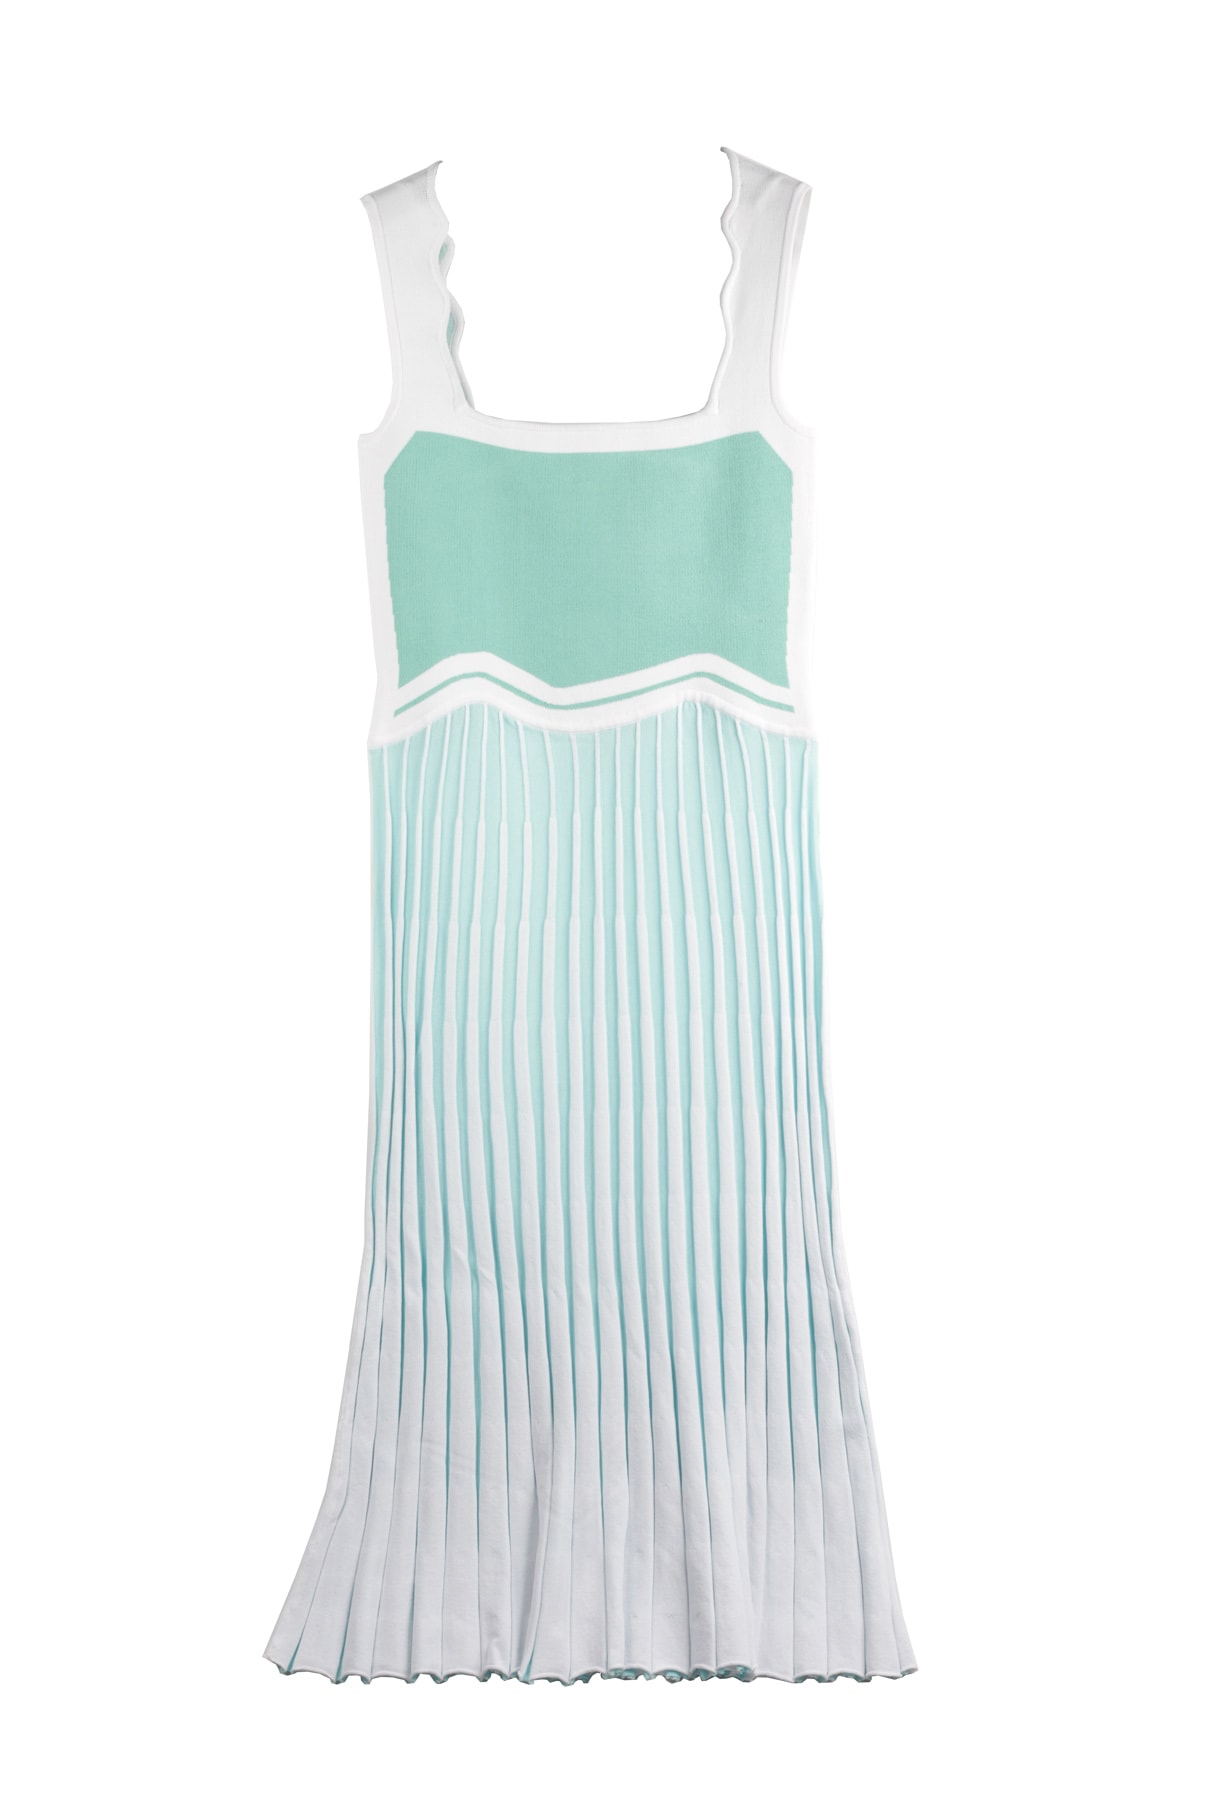 Parlor Wavy Tank Dress Mint Green